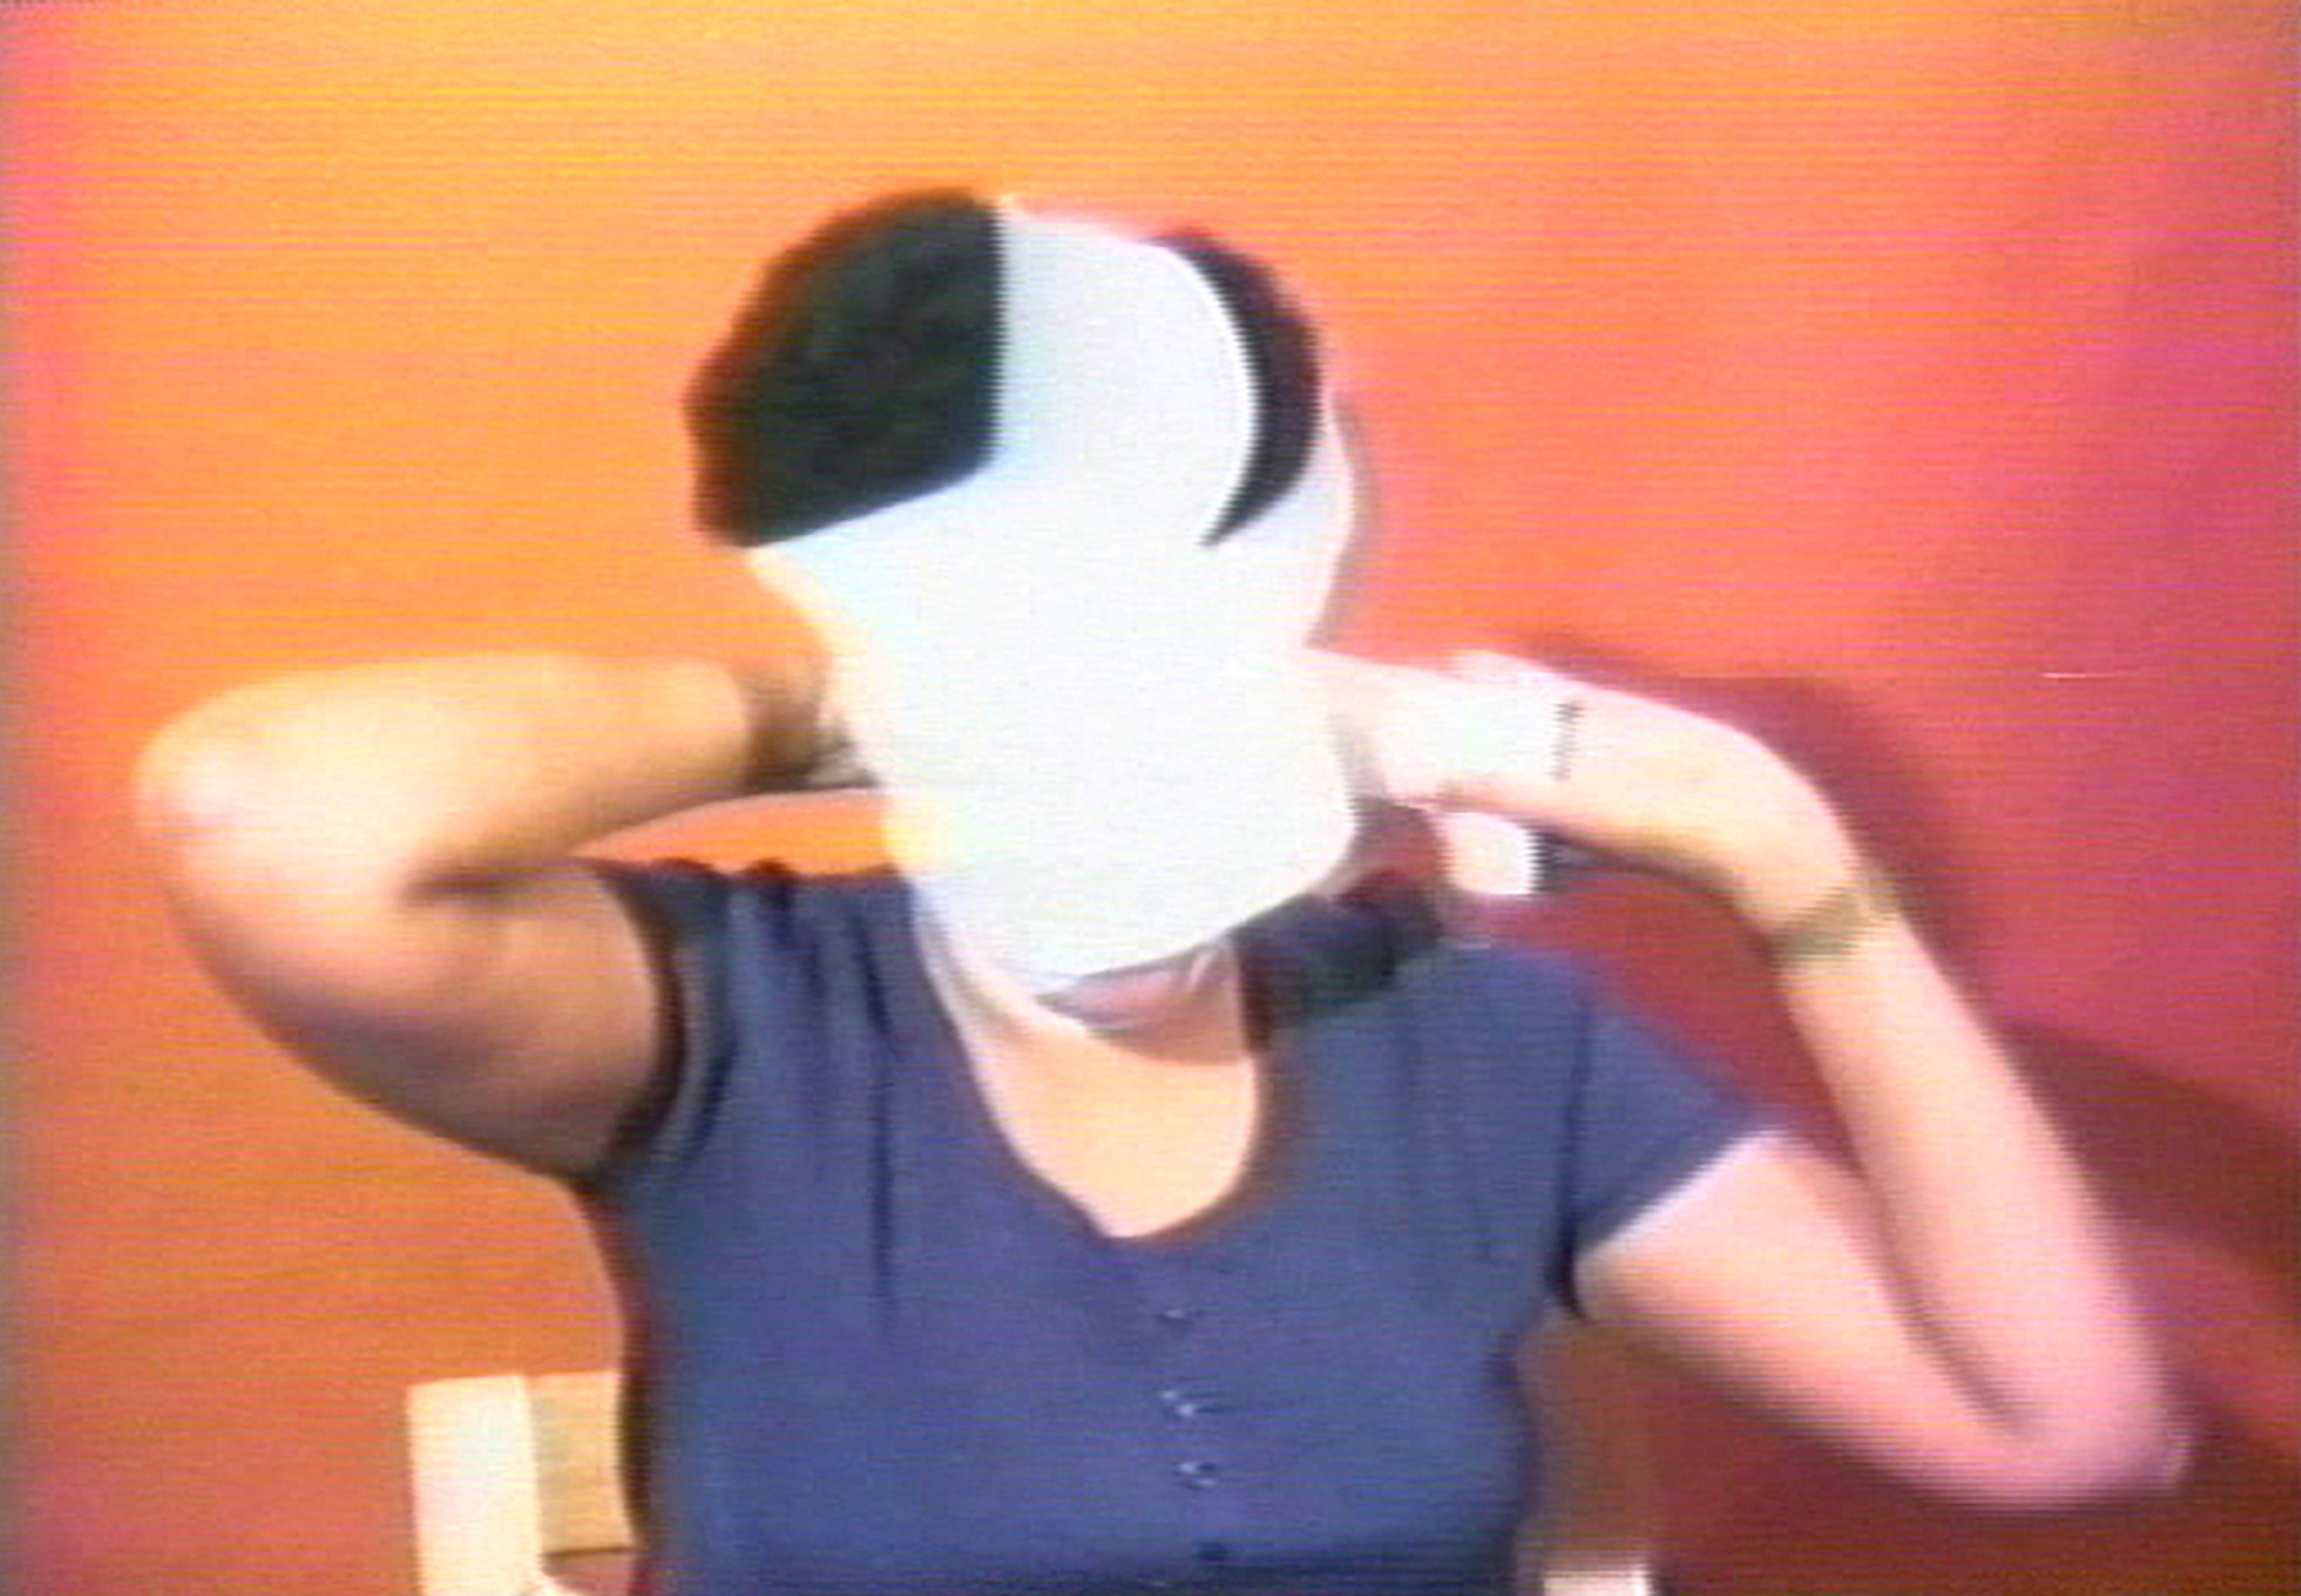 In this grainy image, a woman with a black afro is shown wrapping her face with a white bandage.